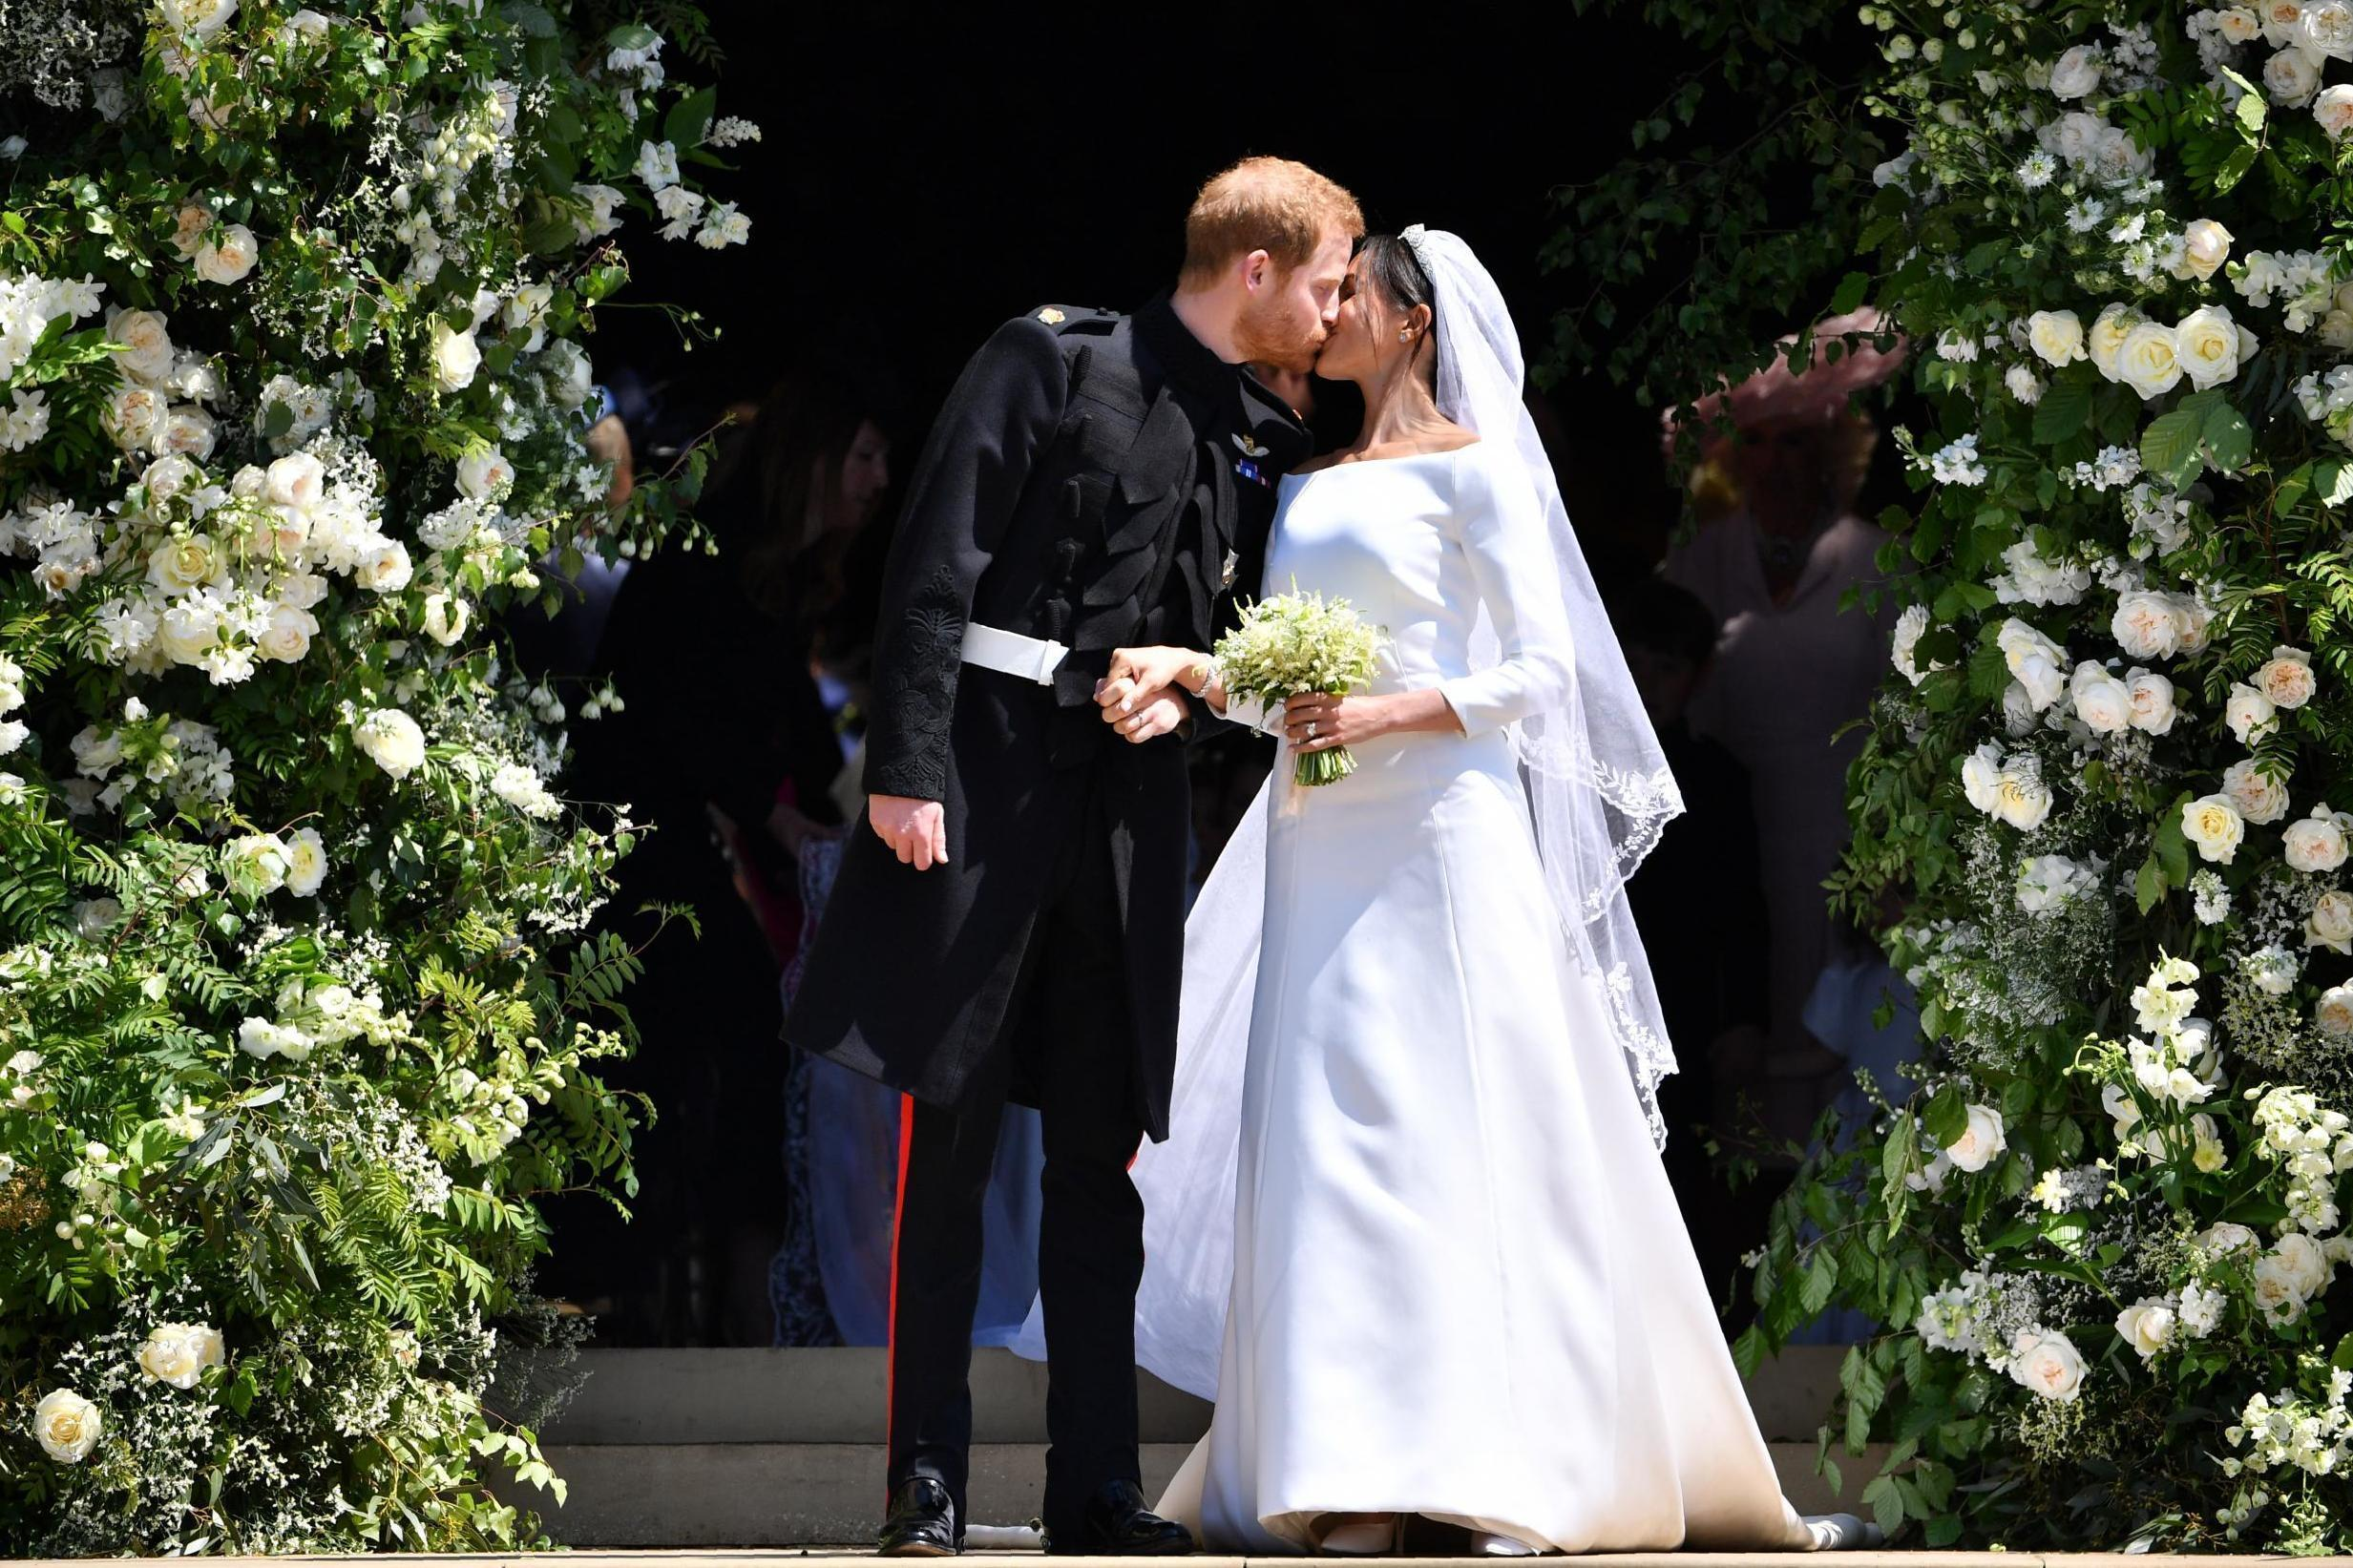 Bishop who married Prince Harry to Meghan Markle reveals moment he 'knew' they love each other